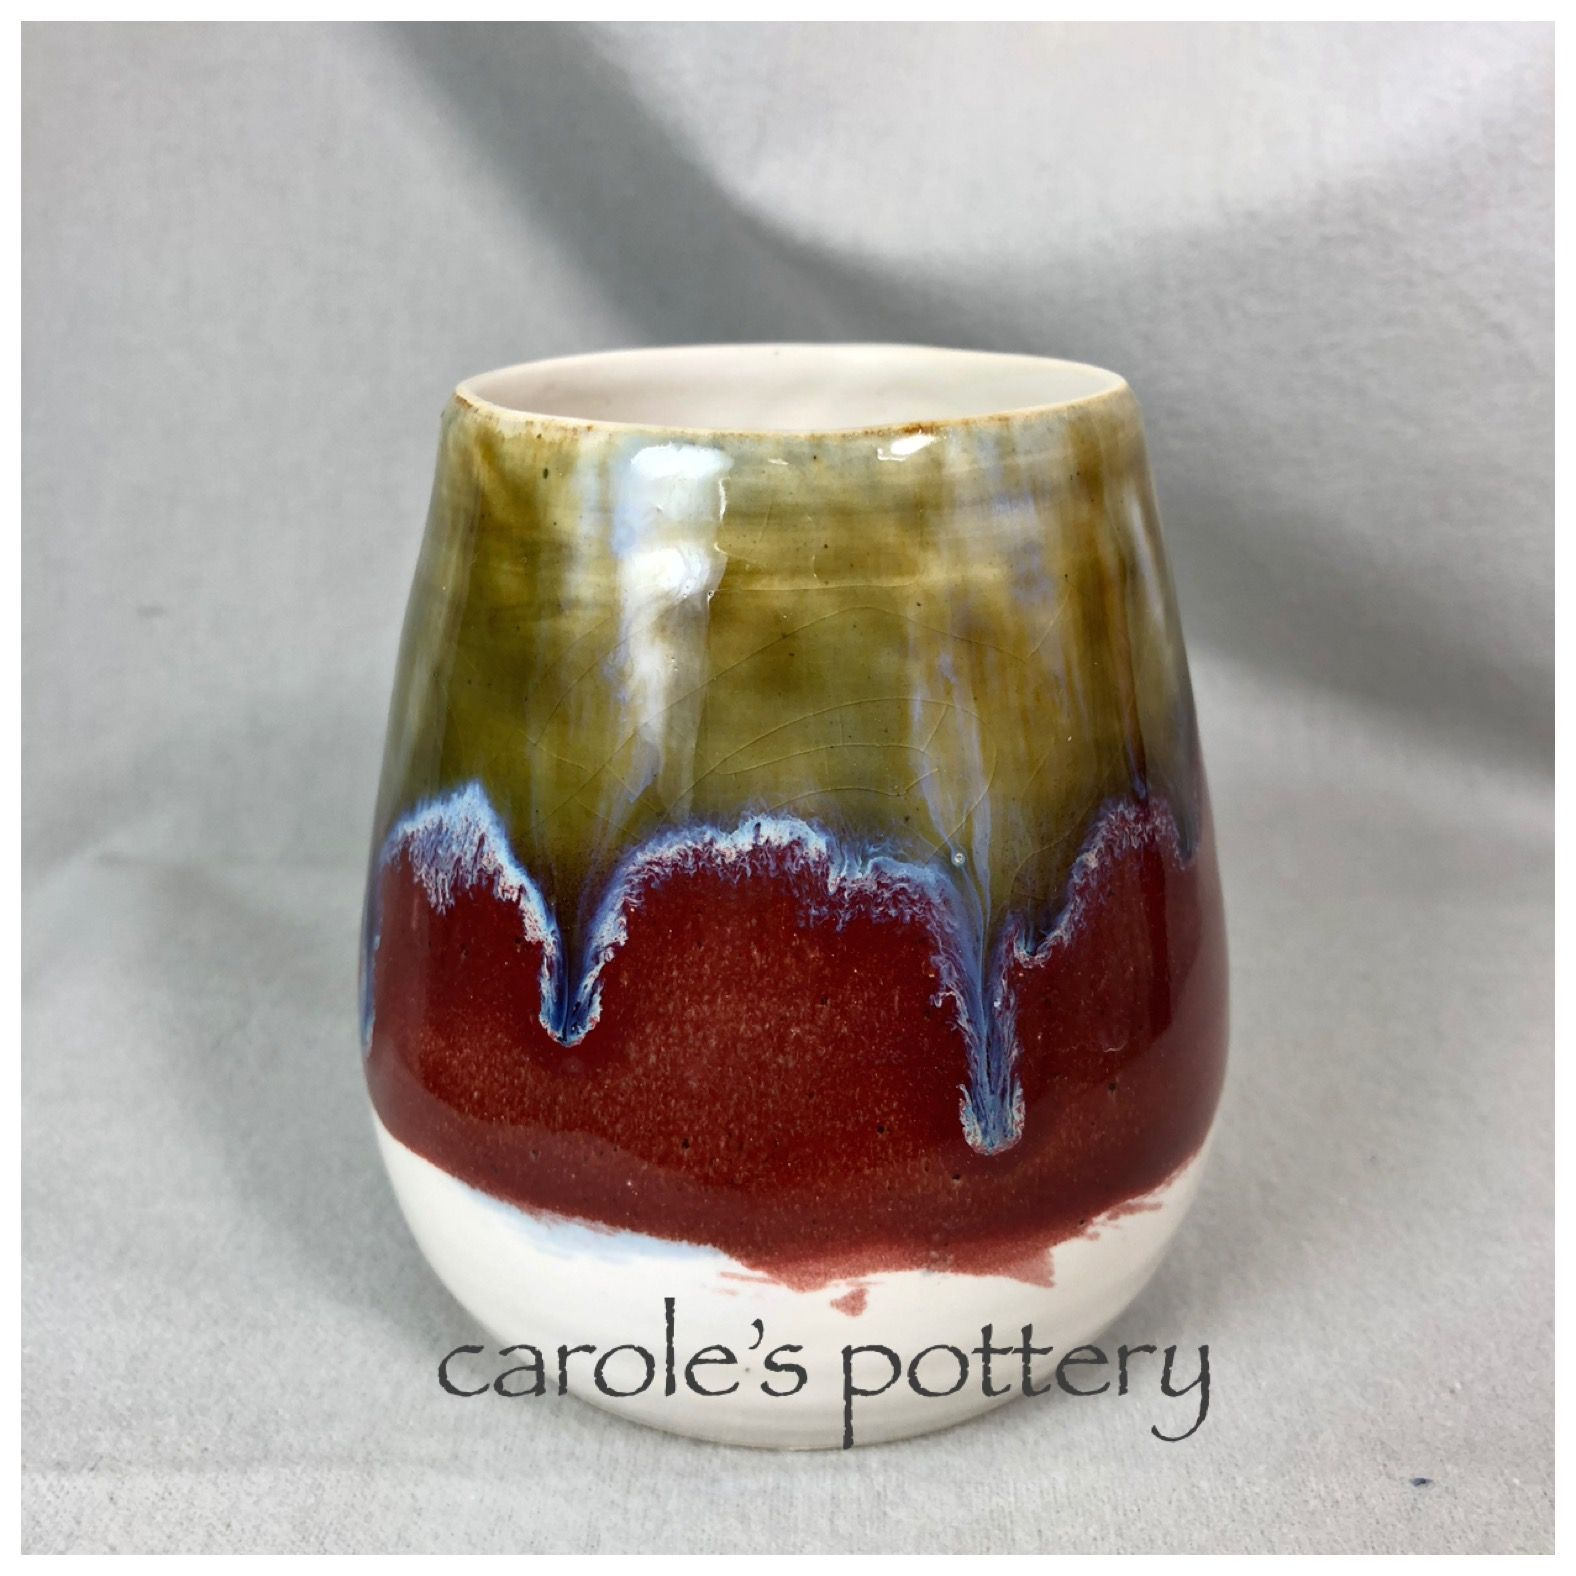 Carole S Pottery Bottom 2 3 Satin Matte White 3x Top 2 3 Coyote Blue Purple 1 X And 1 3 Mayco Flux Middle Band 3x Deep Pottery Stoneware Stemless Wine Glass